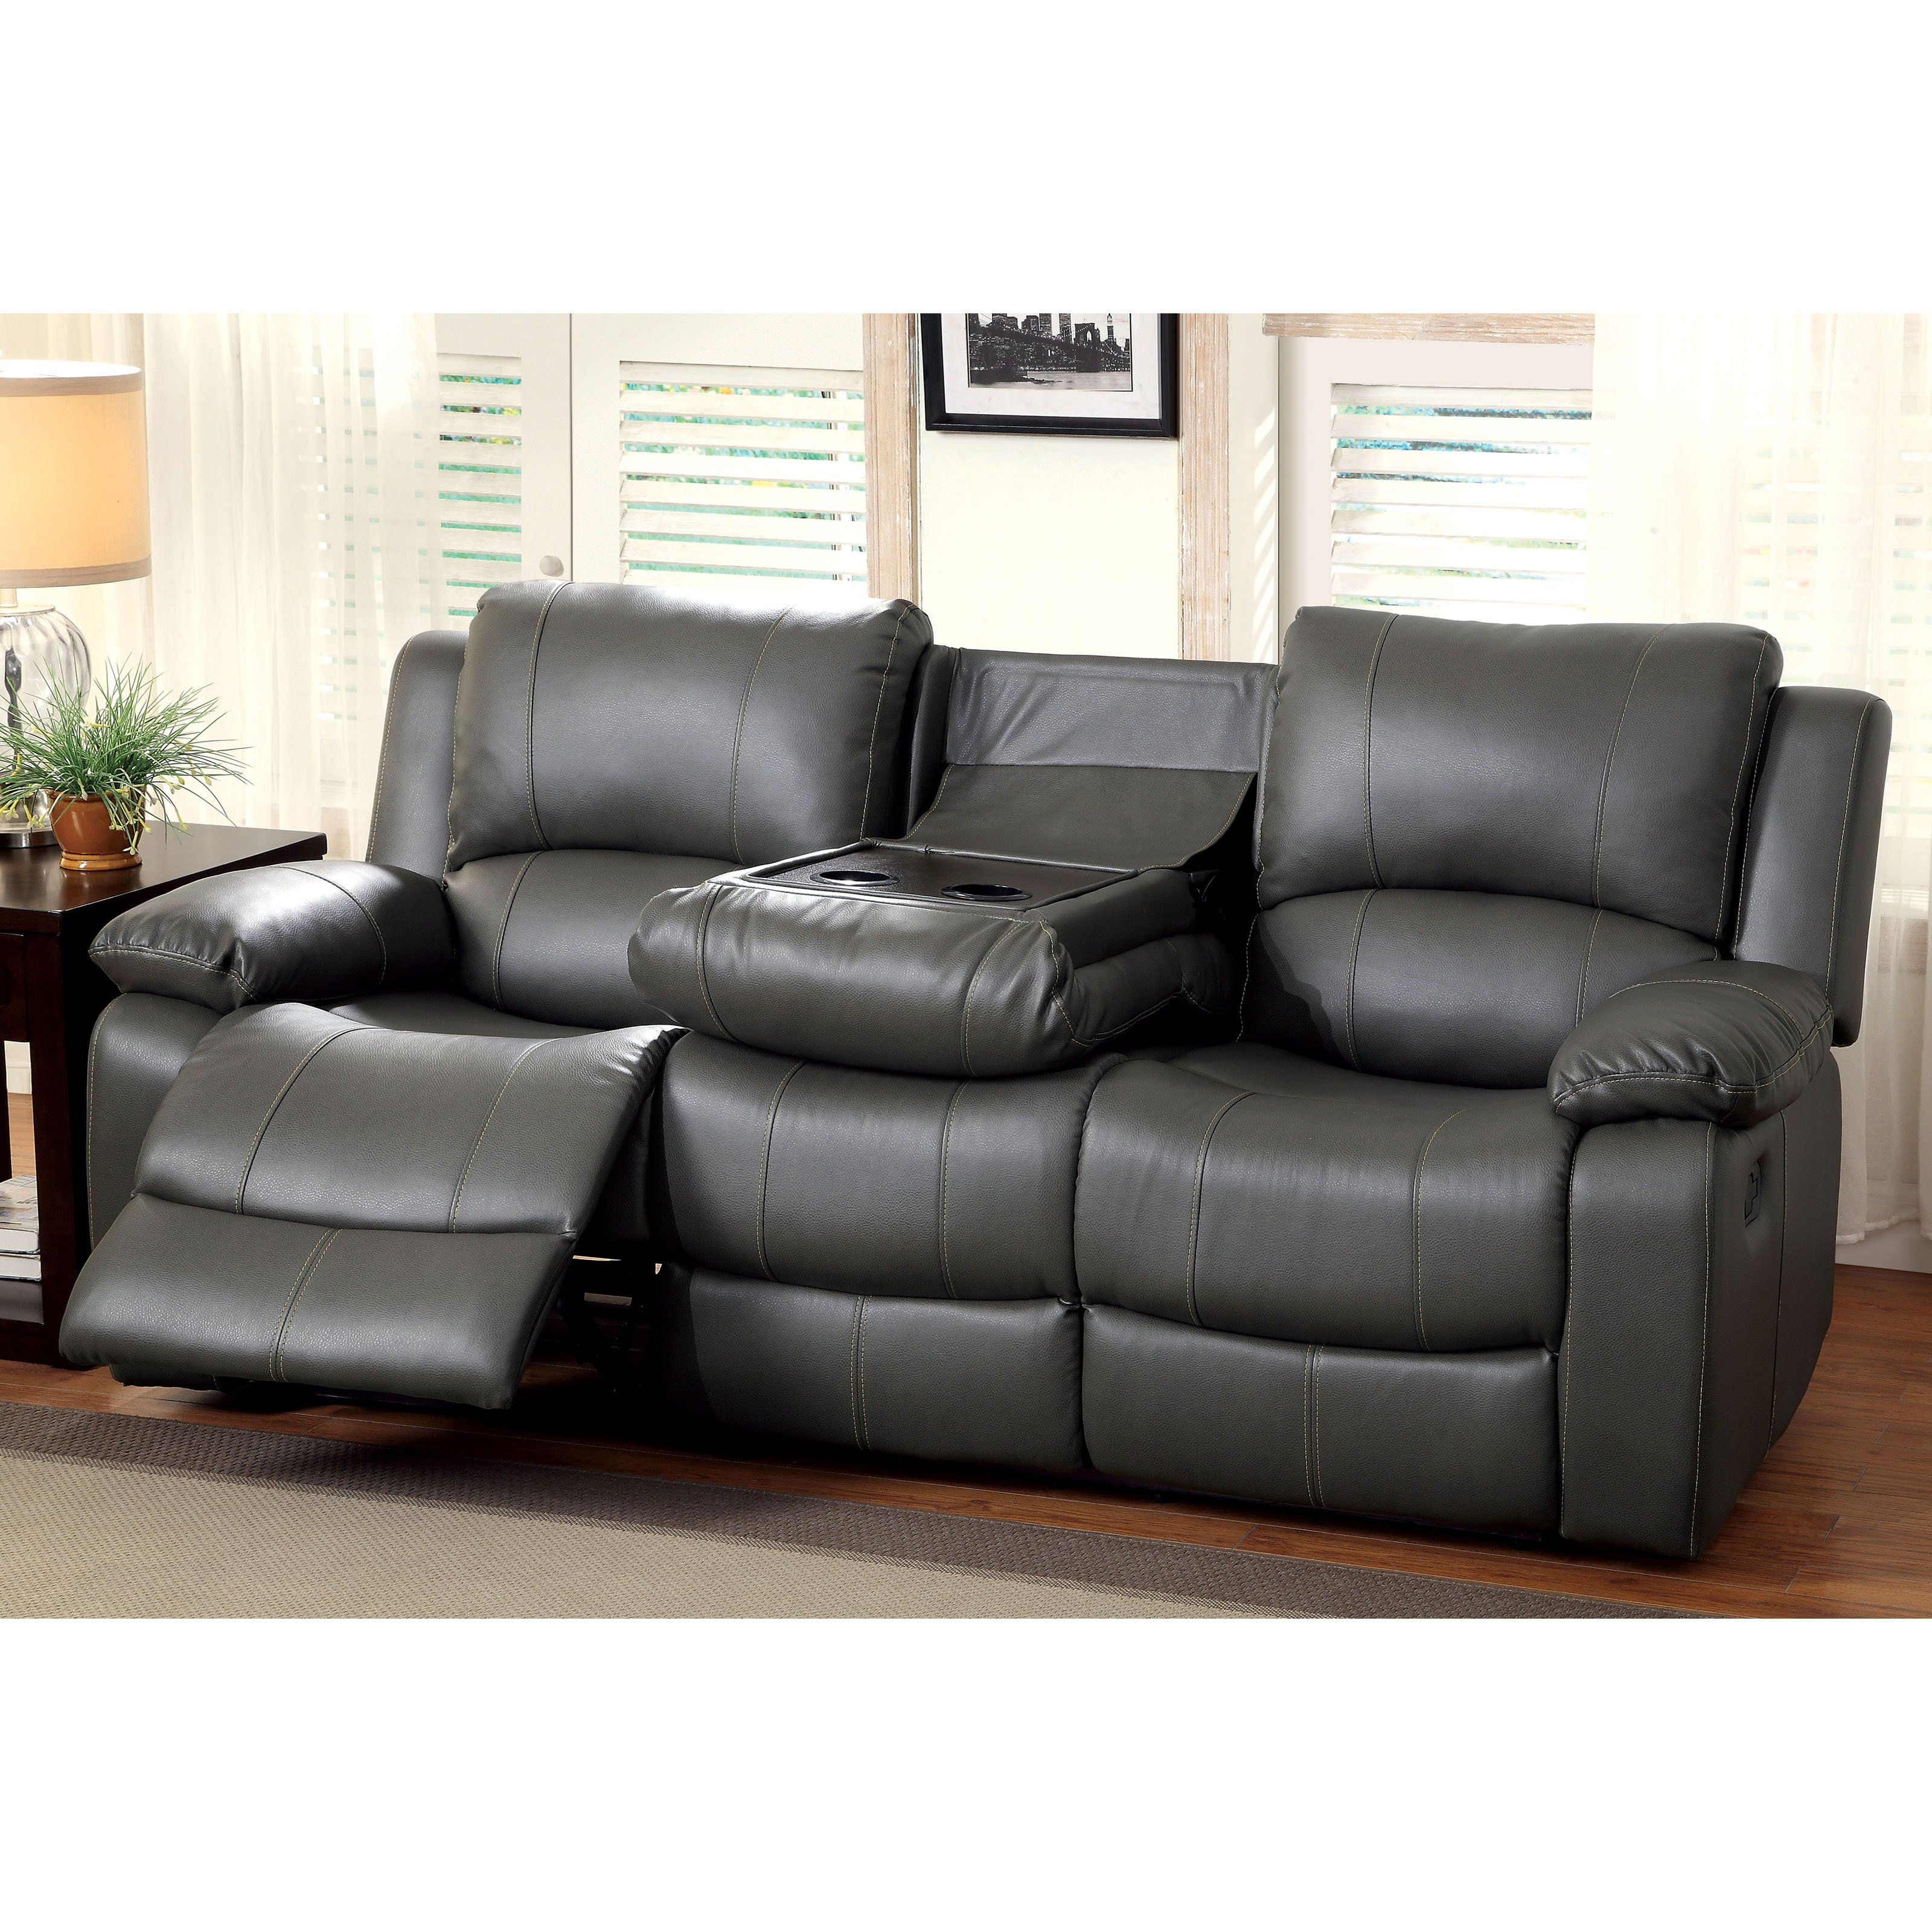 Swell Furniture Of America Rathbone Recliner Sofa With Cup Holders Machost Co Dining Chair Design Ideas Machostcouk